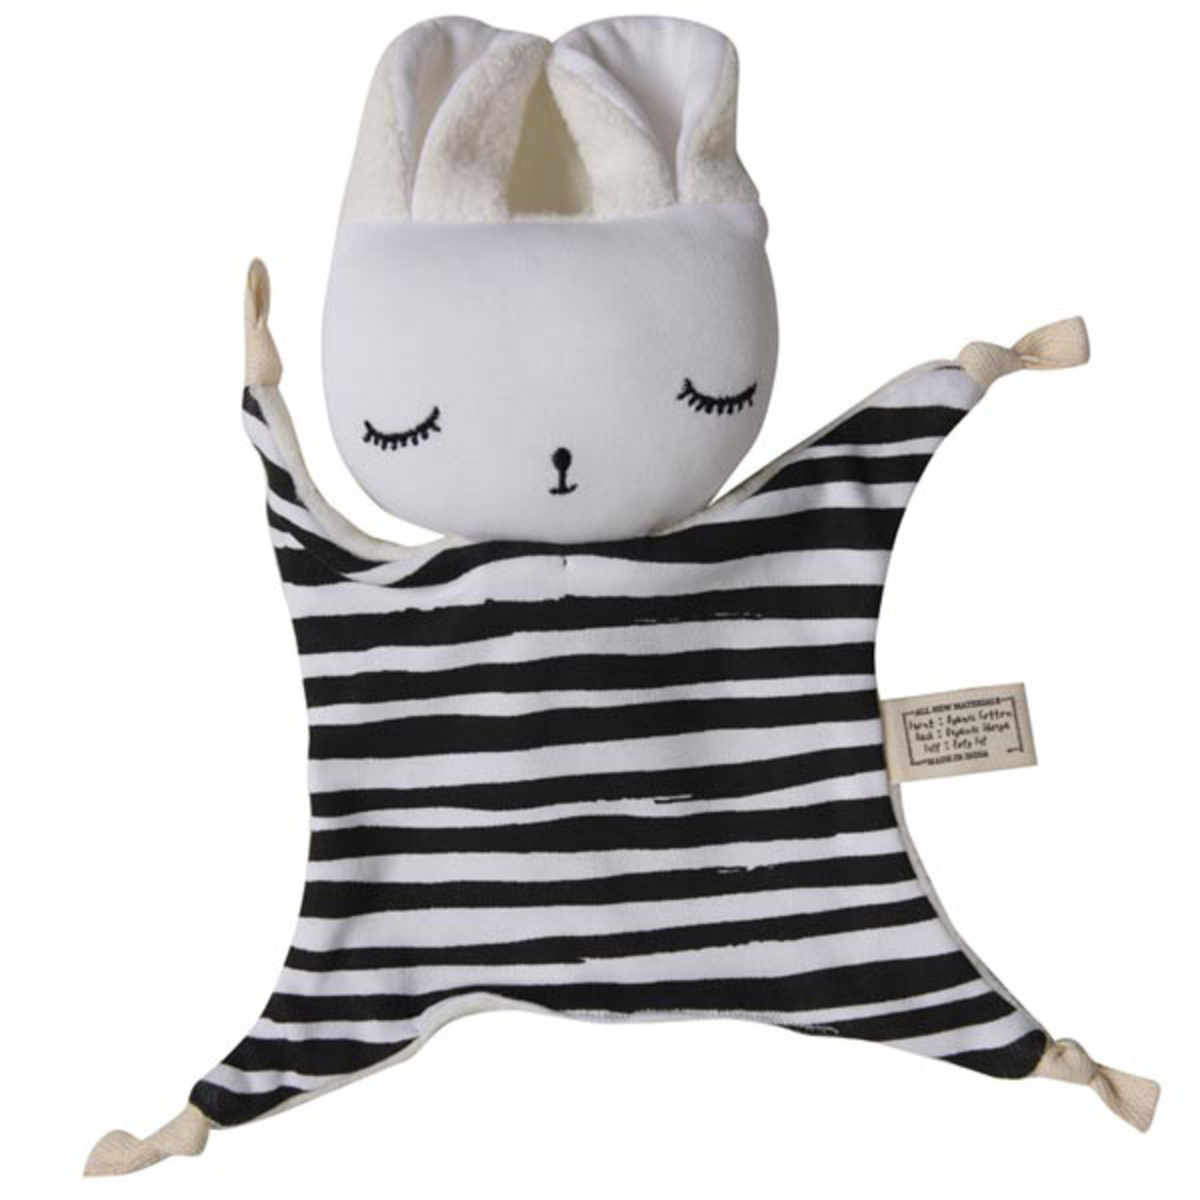 Doudou Doudou - Stripes Doudou - Stripes